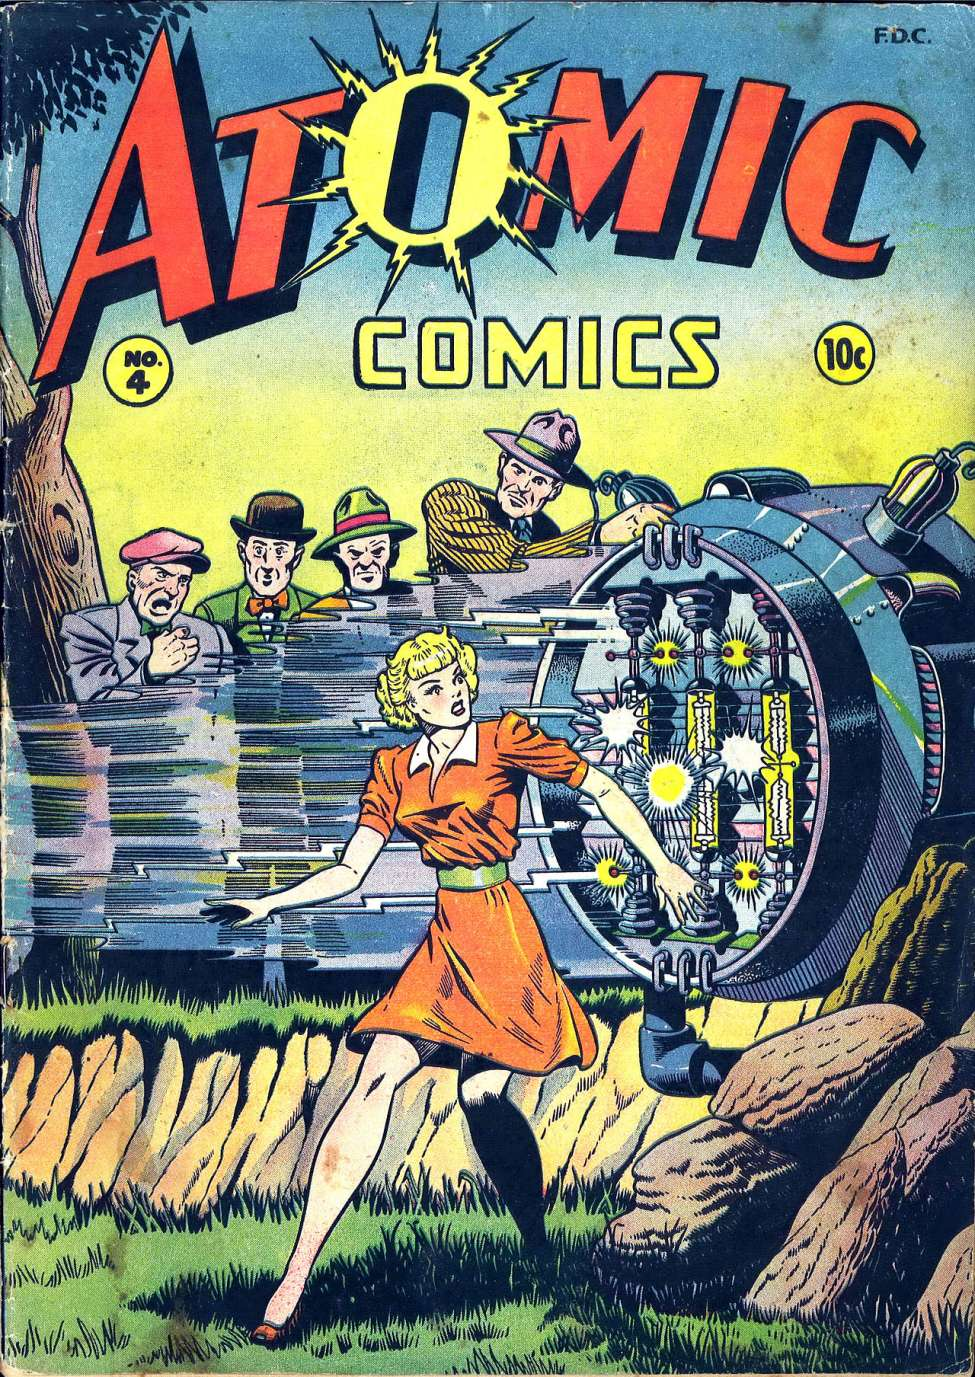 Atomic Comics #4, by Green Publishing